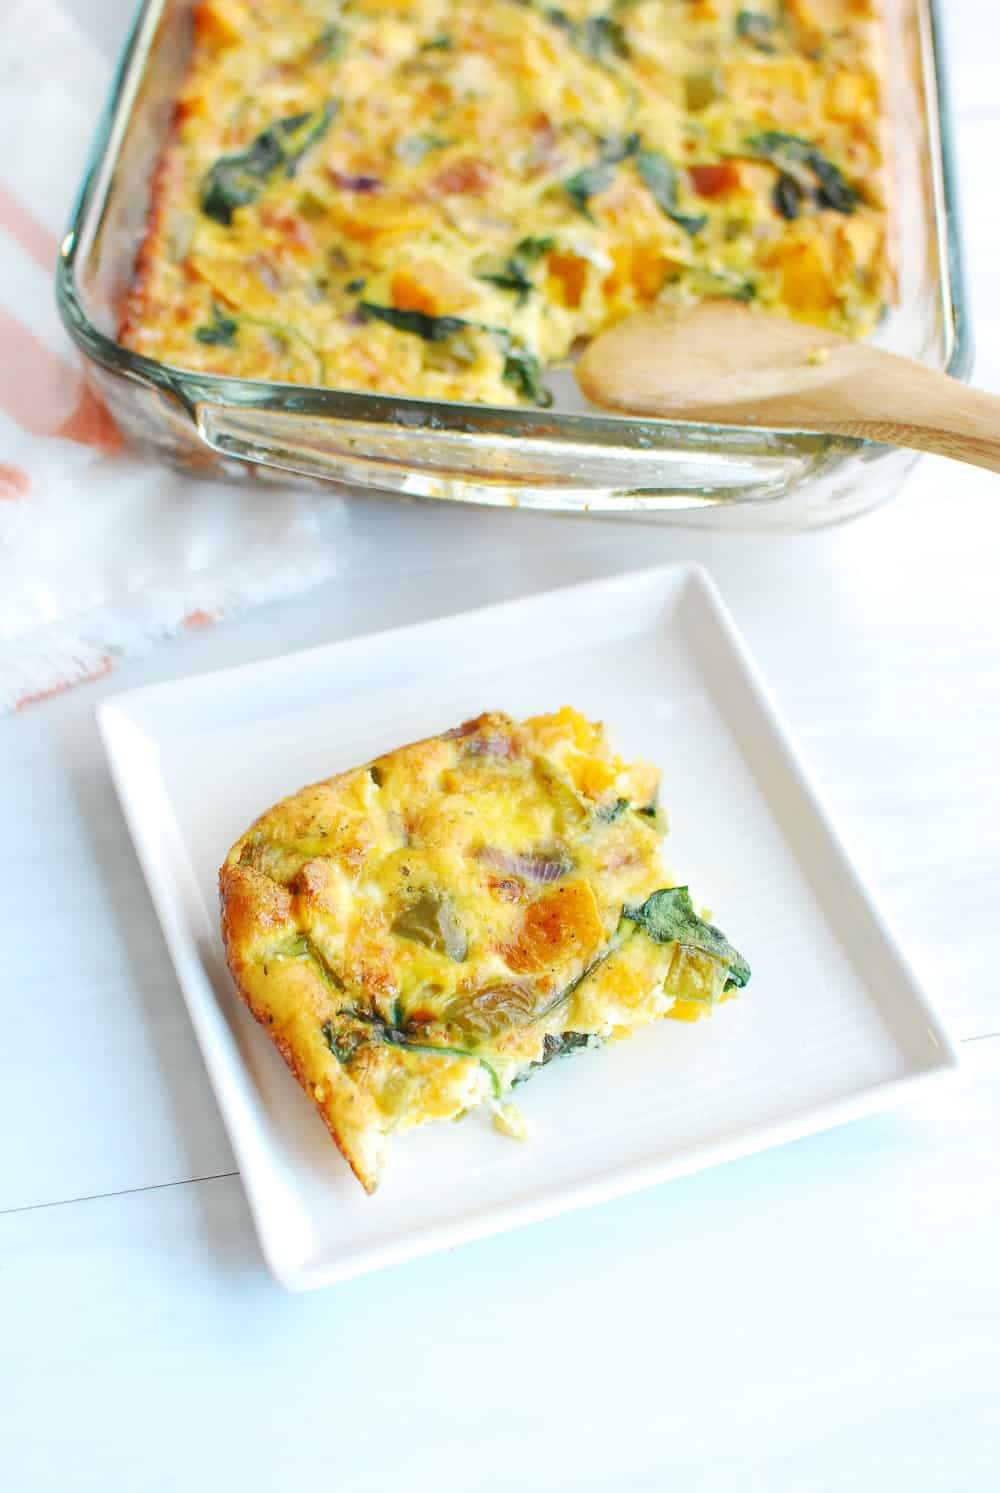 Slice of butternut squash frittata on a plate